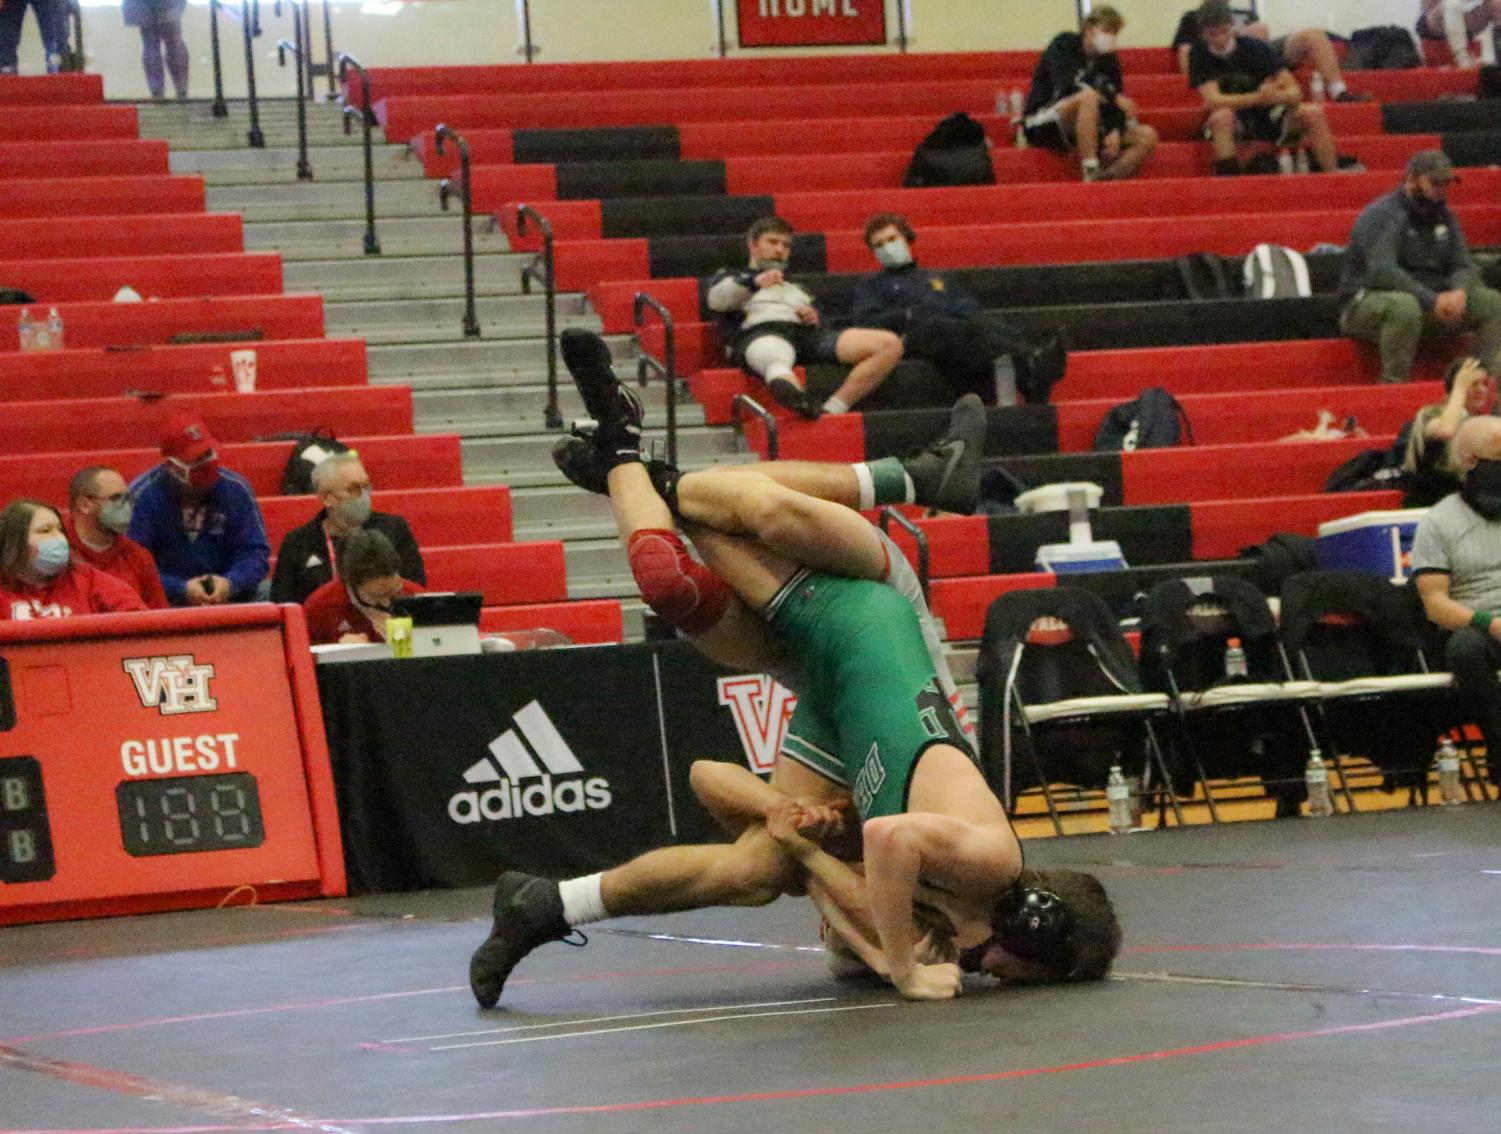 Wrestling+Substate+2%2F20+%28Photos+by+Kiley+Hale%29